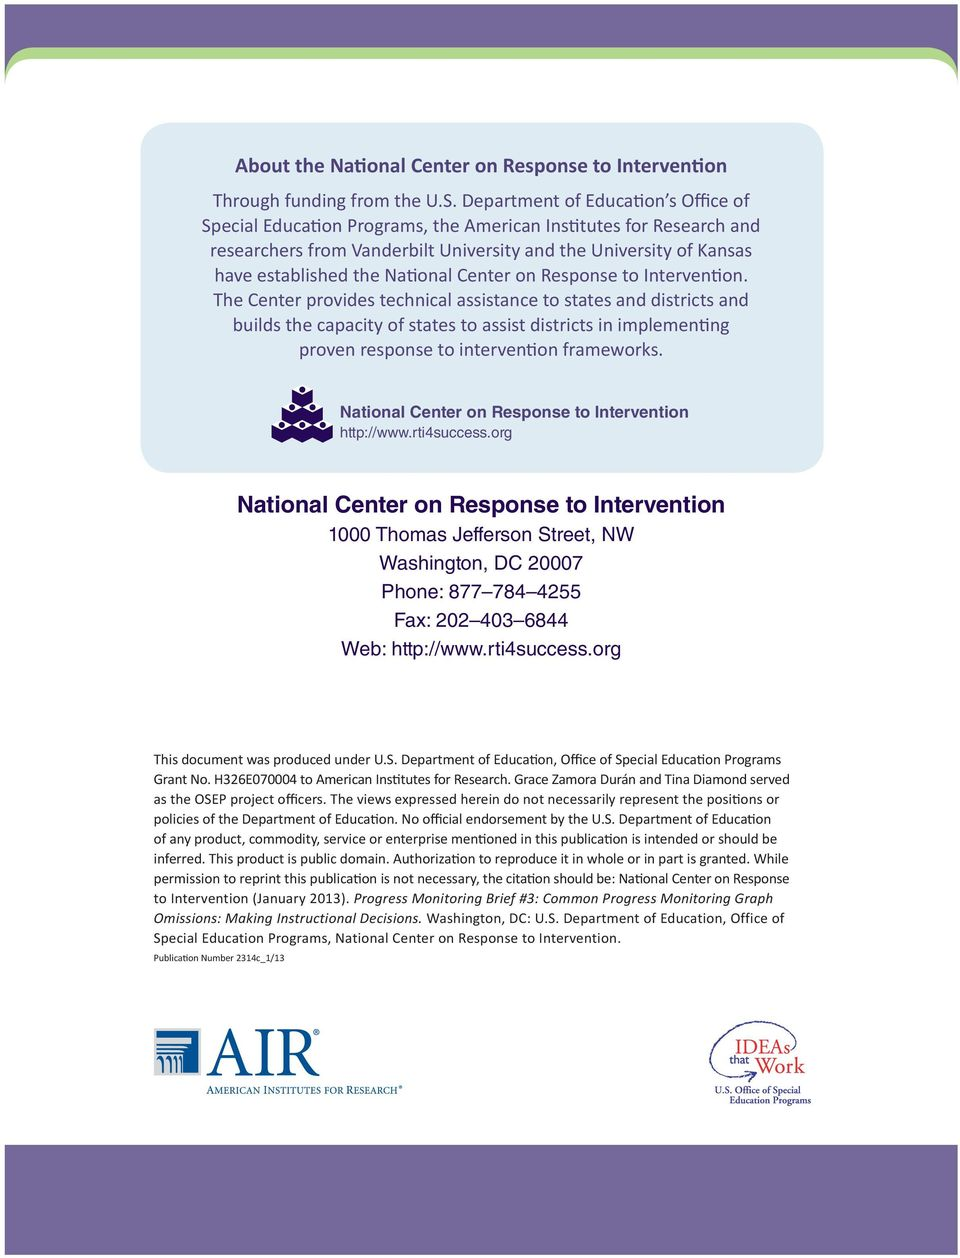 National Center on Response to Intervention.